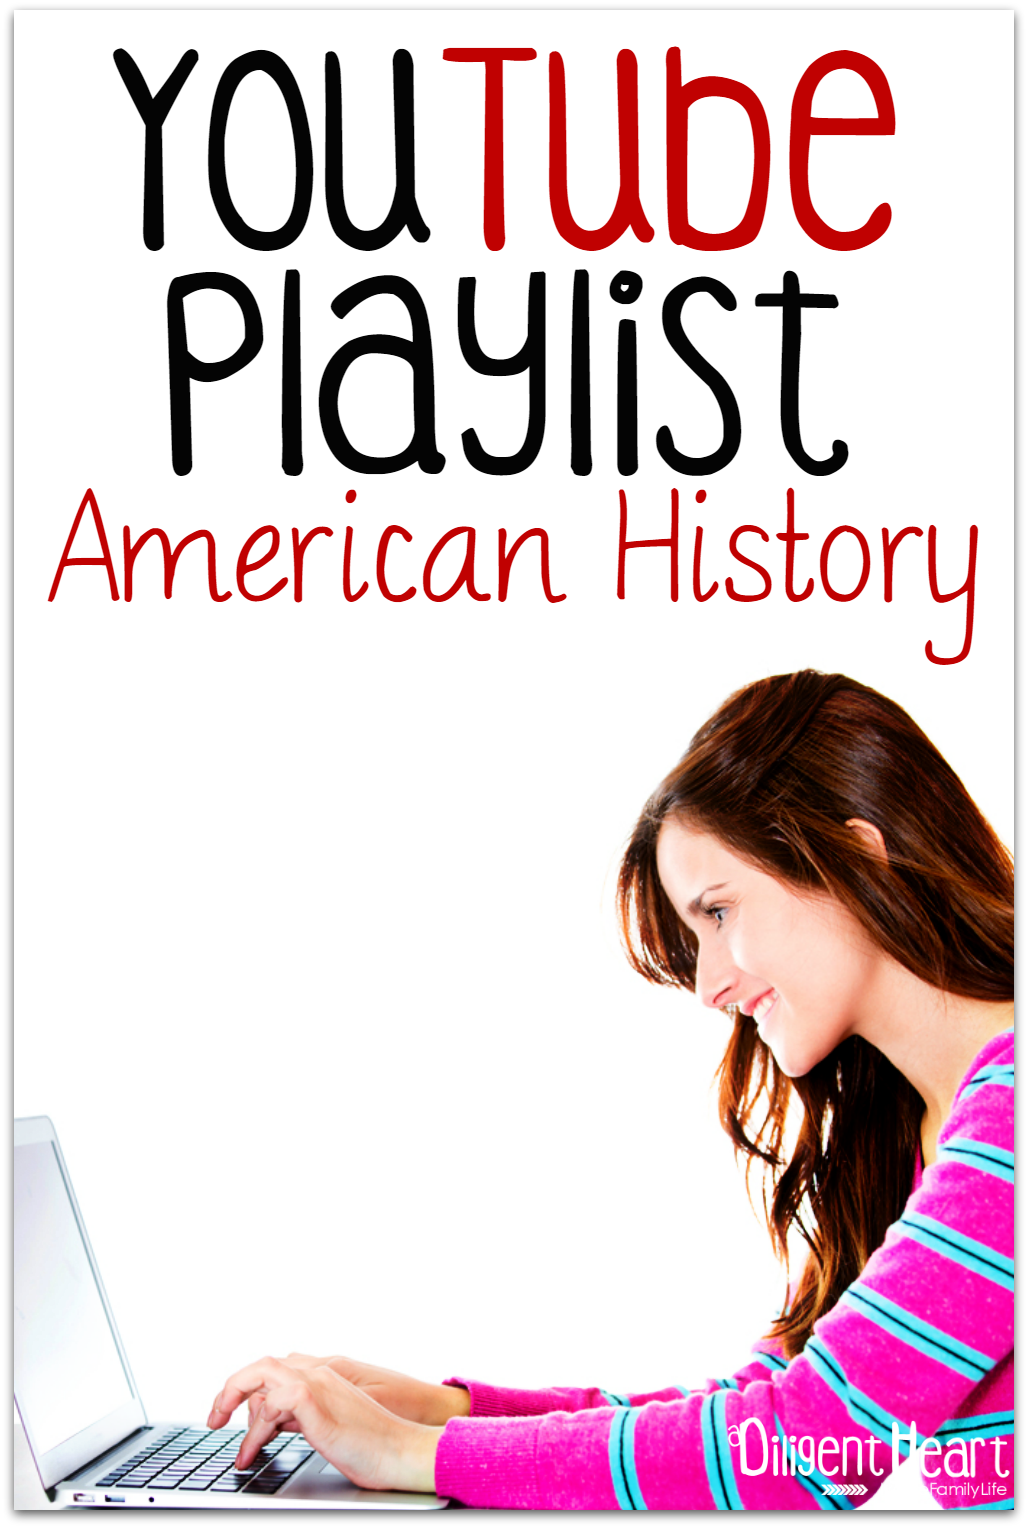 Studying American History in your Homeschool? Do you love using digital resources for your homeschool (or want to?). As we've worked through All American History I'm compiling videos to help supplement our studies. Come on over and check them out! YouTube Playlist I American History I adiligentheart.com